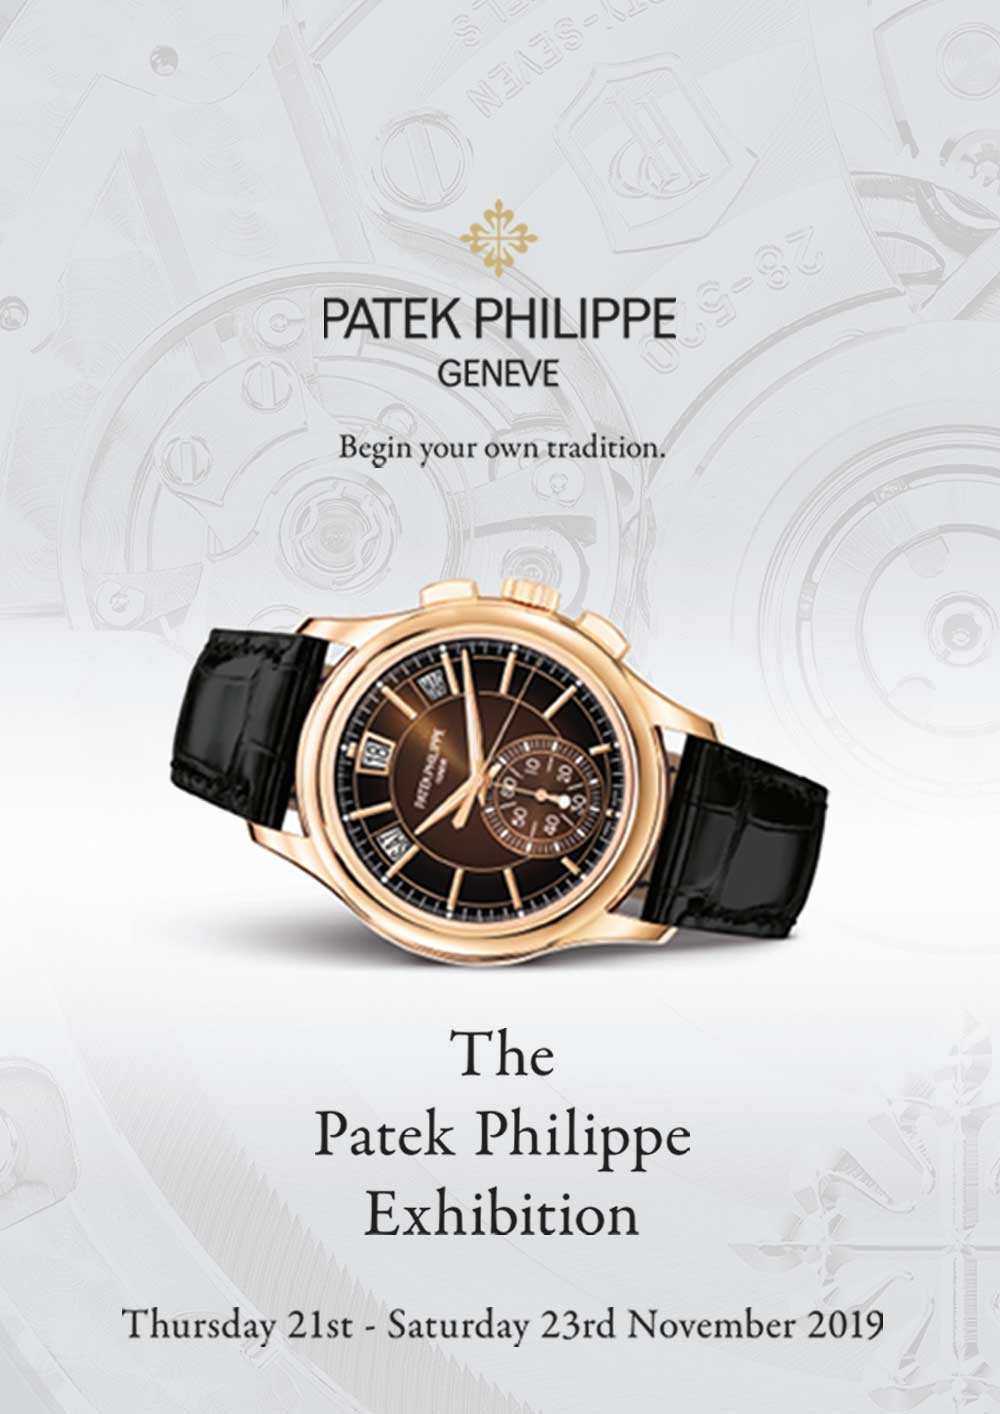 THE PATEK PHILIPPE EXHIBITION